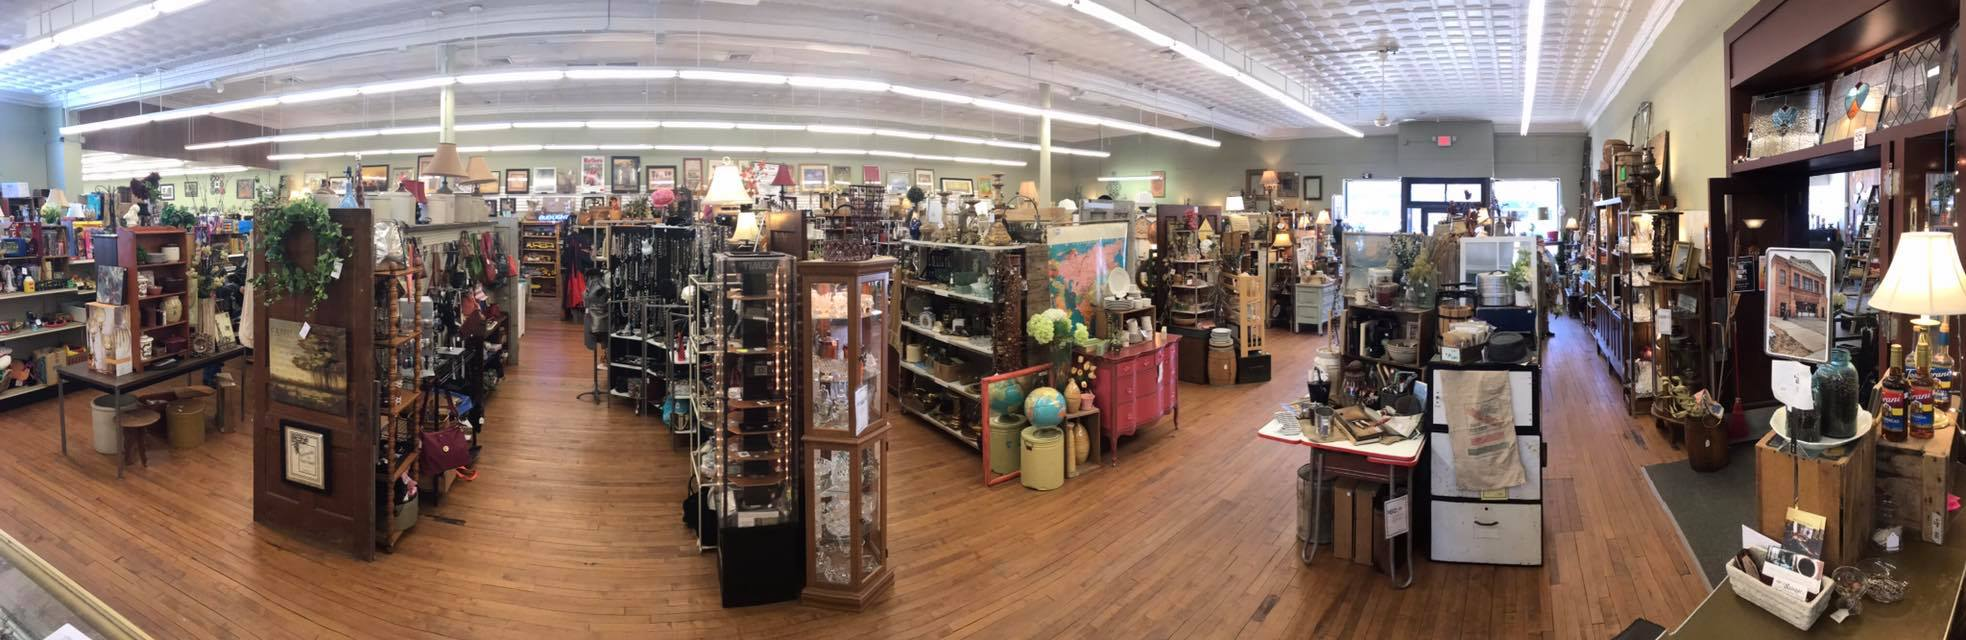 A look at the interior of Rustic Treasures